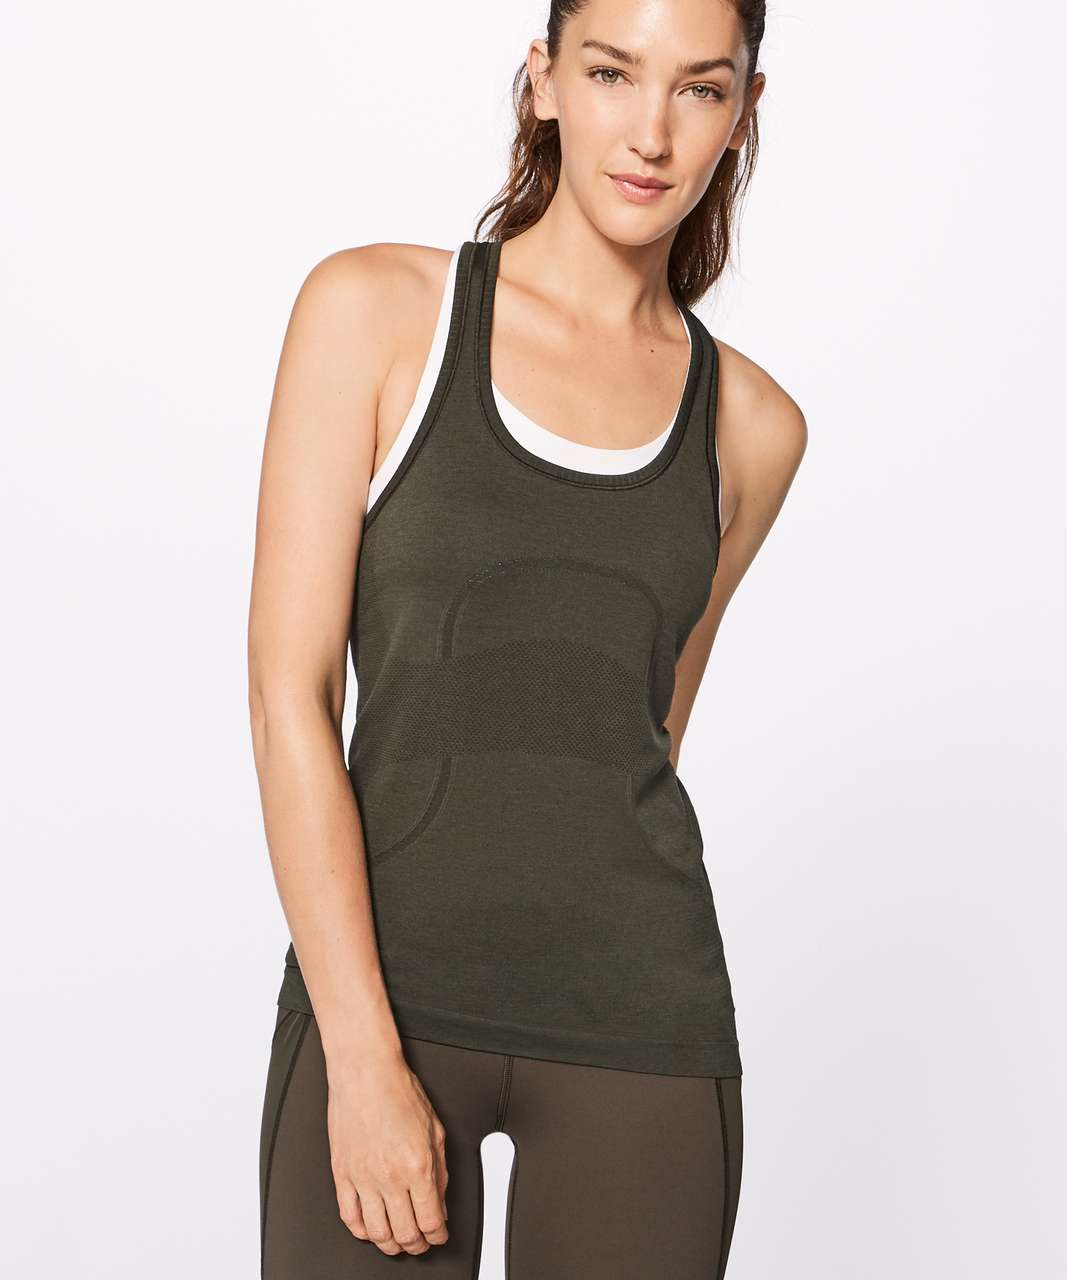 Lululemon Swiftly Tech Racerback - Dark Olive / Dark Olive